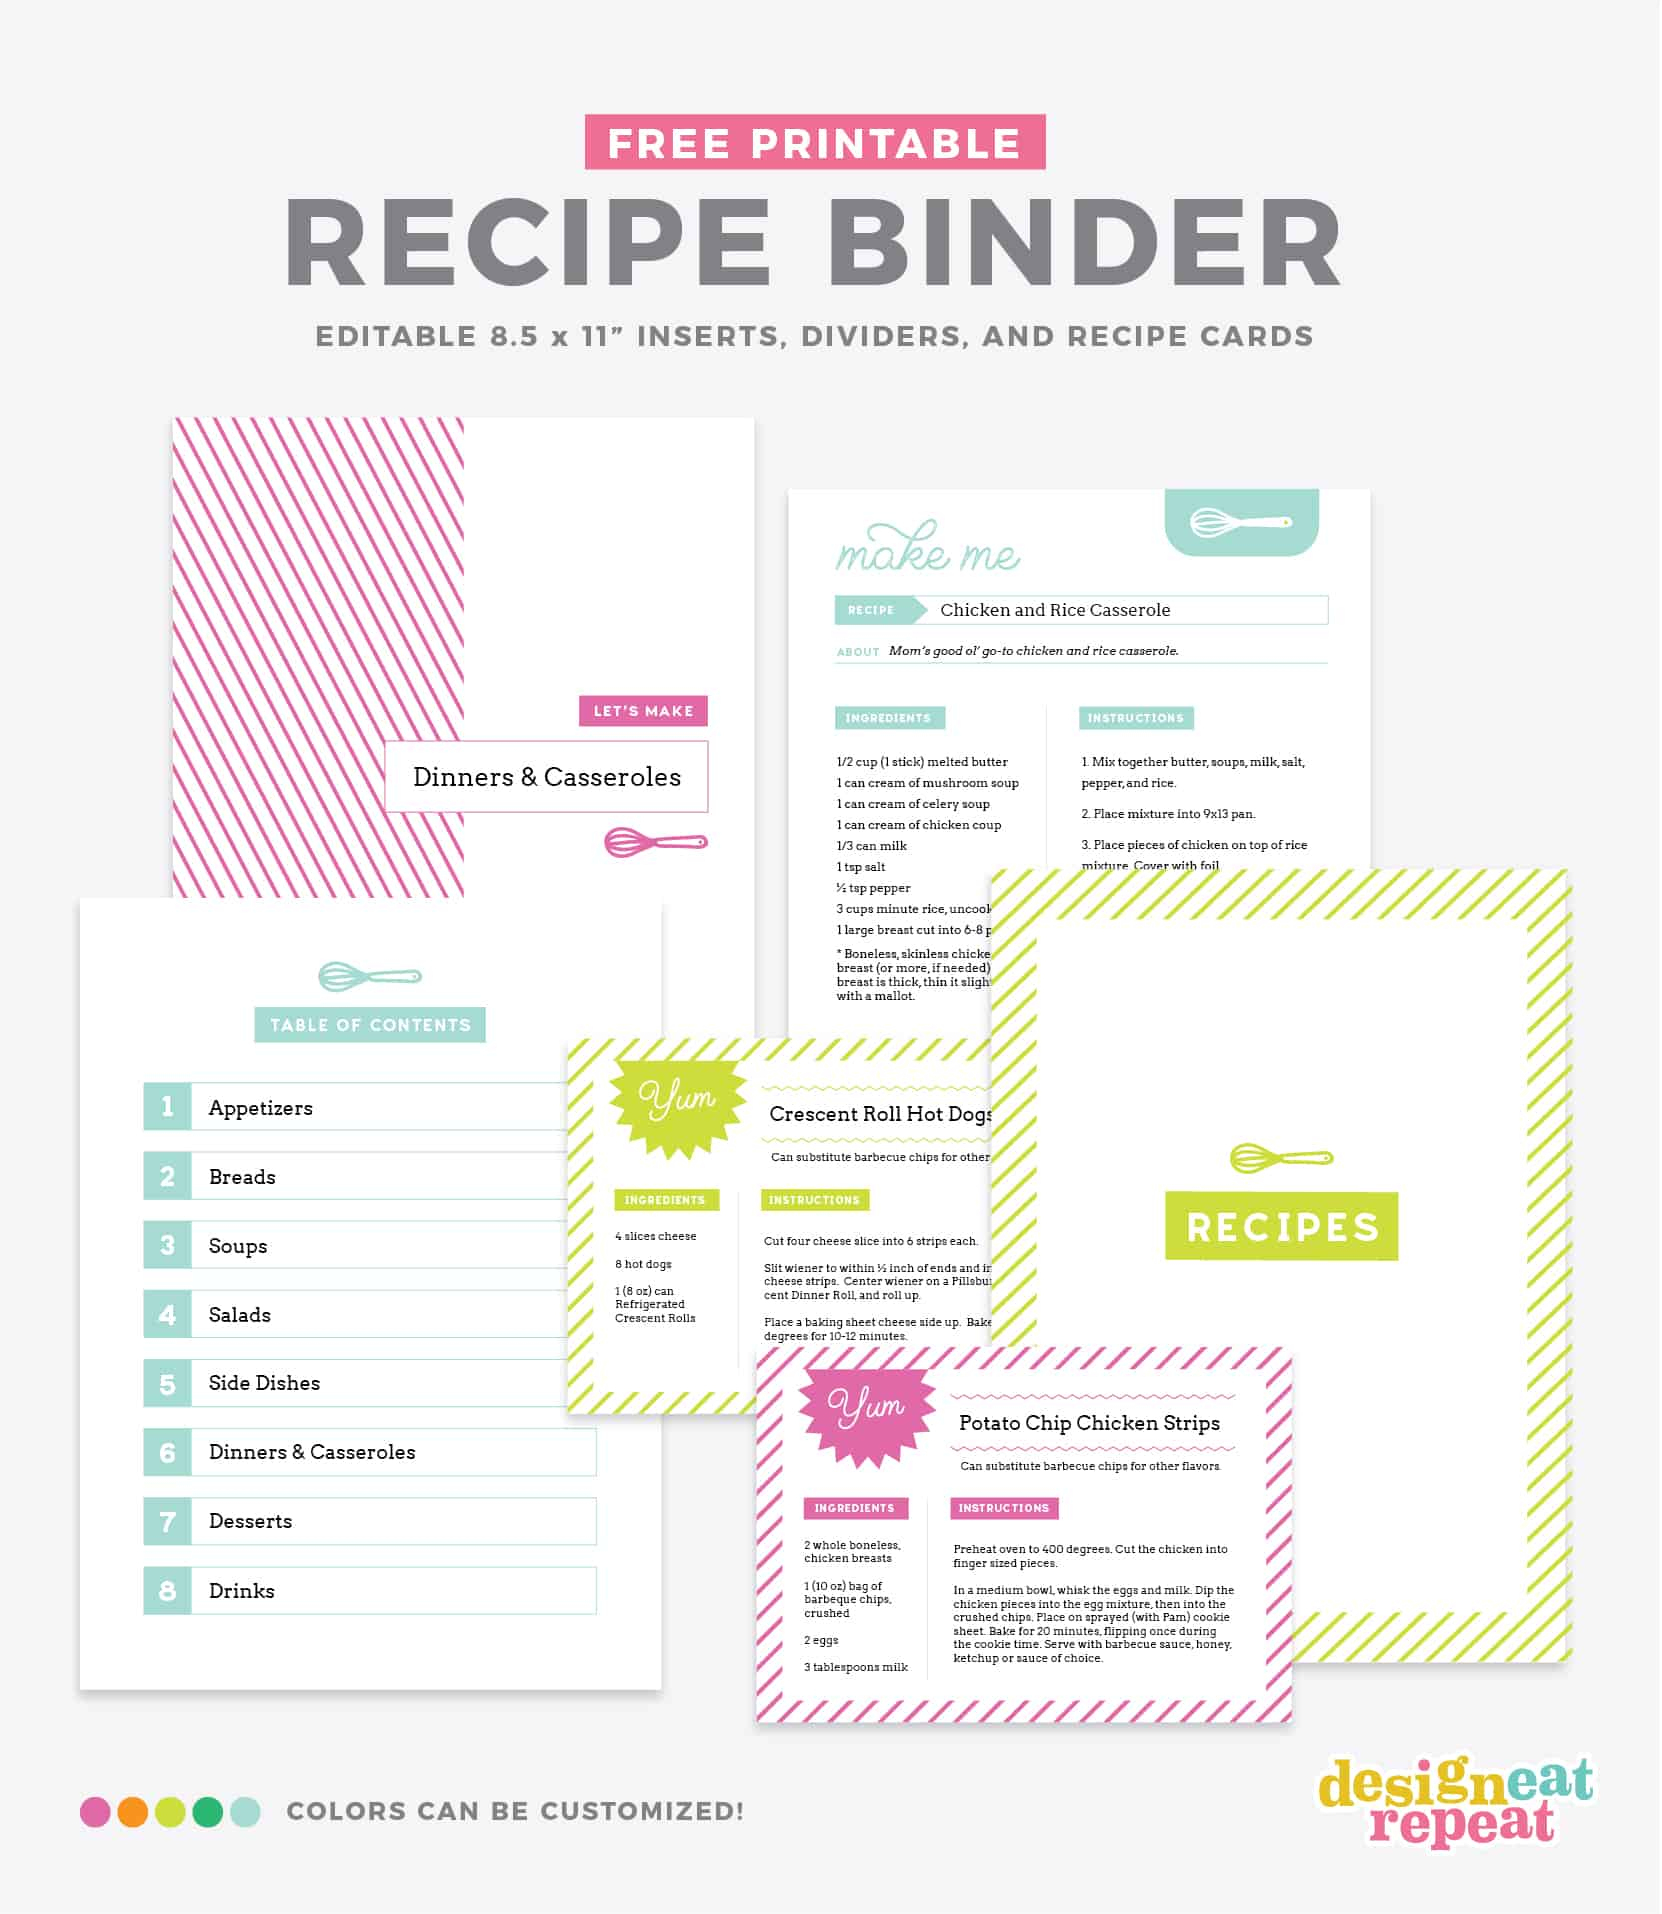 Diy Recipe Book (With Free Printable Recipe Binder Kit!) - Free Printable Recipe Page Template